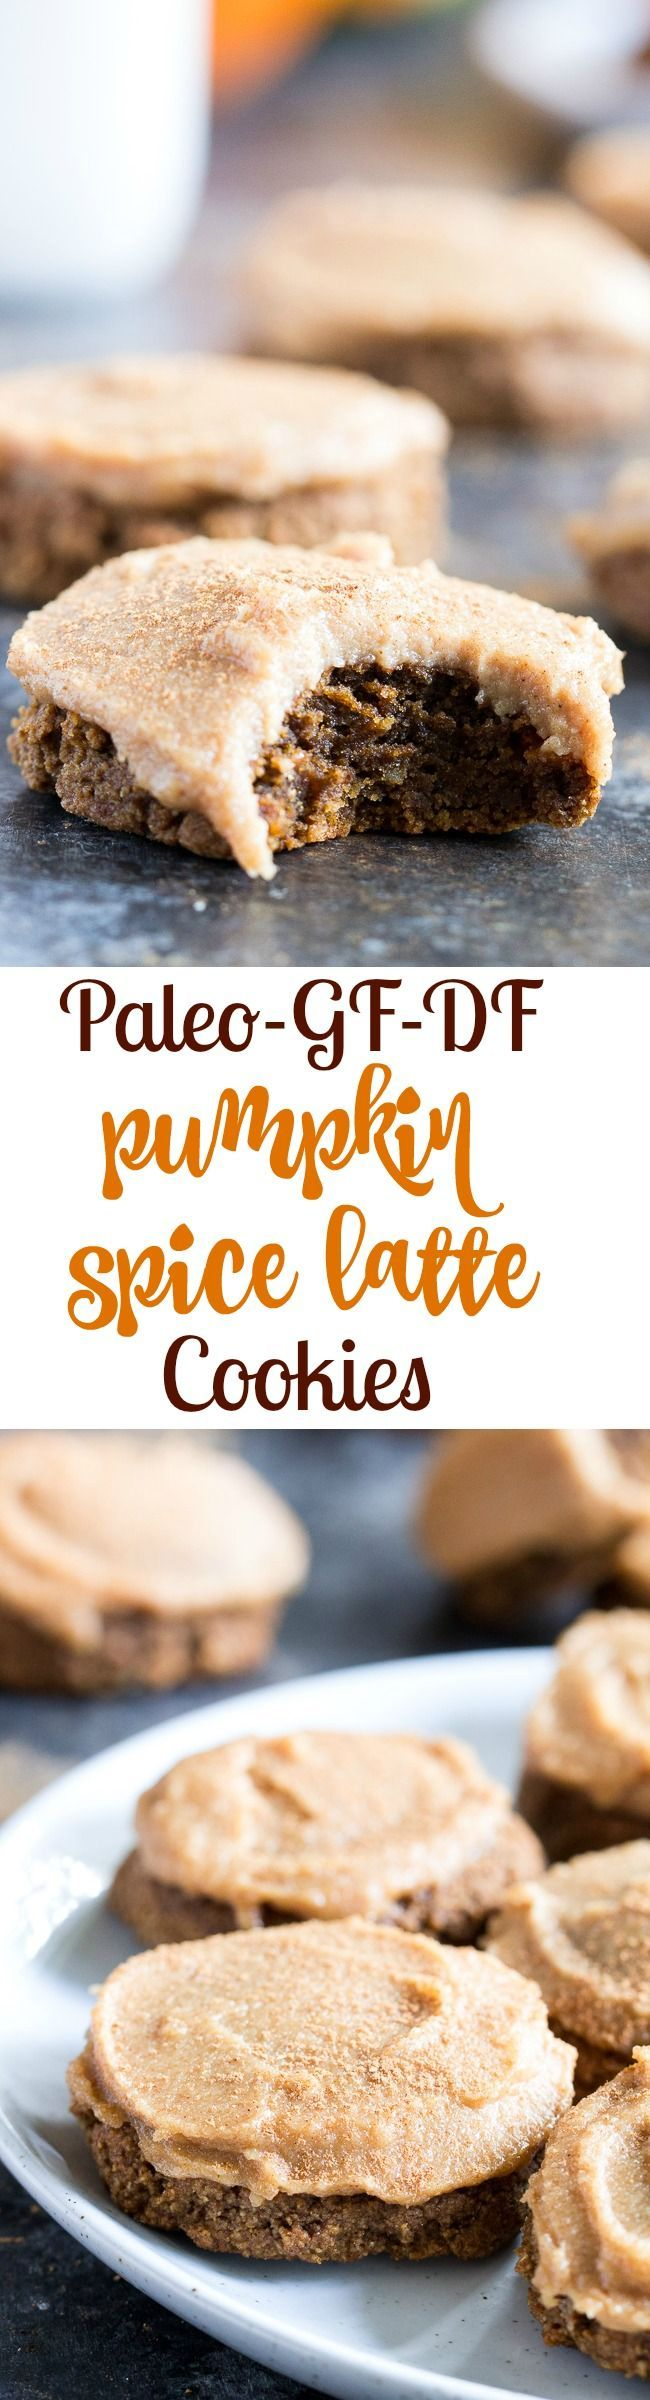 "These Paleo Pumpkin Spice Latte Cookies have lots of sweet spice and are topped with a maple cinnamon cashew ""cream cheese"" frosting! Soft and chewy, gluten-free, dairy-free, vegan option. #glutenfree #vegan #pumpkin #cleaneating #fallrecipes"